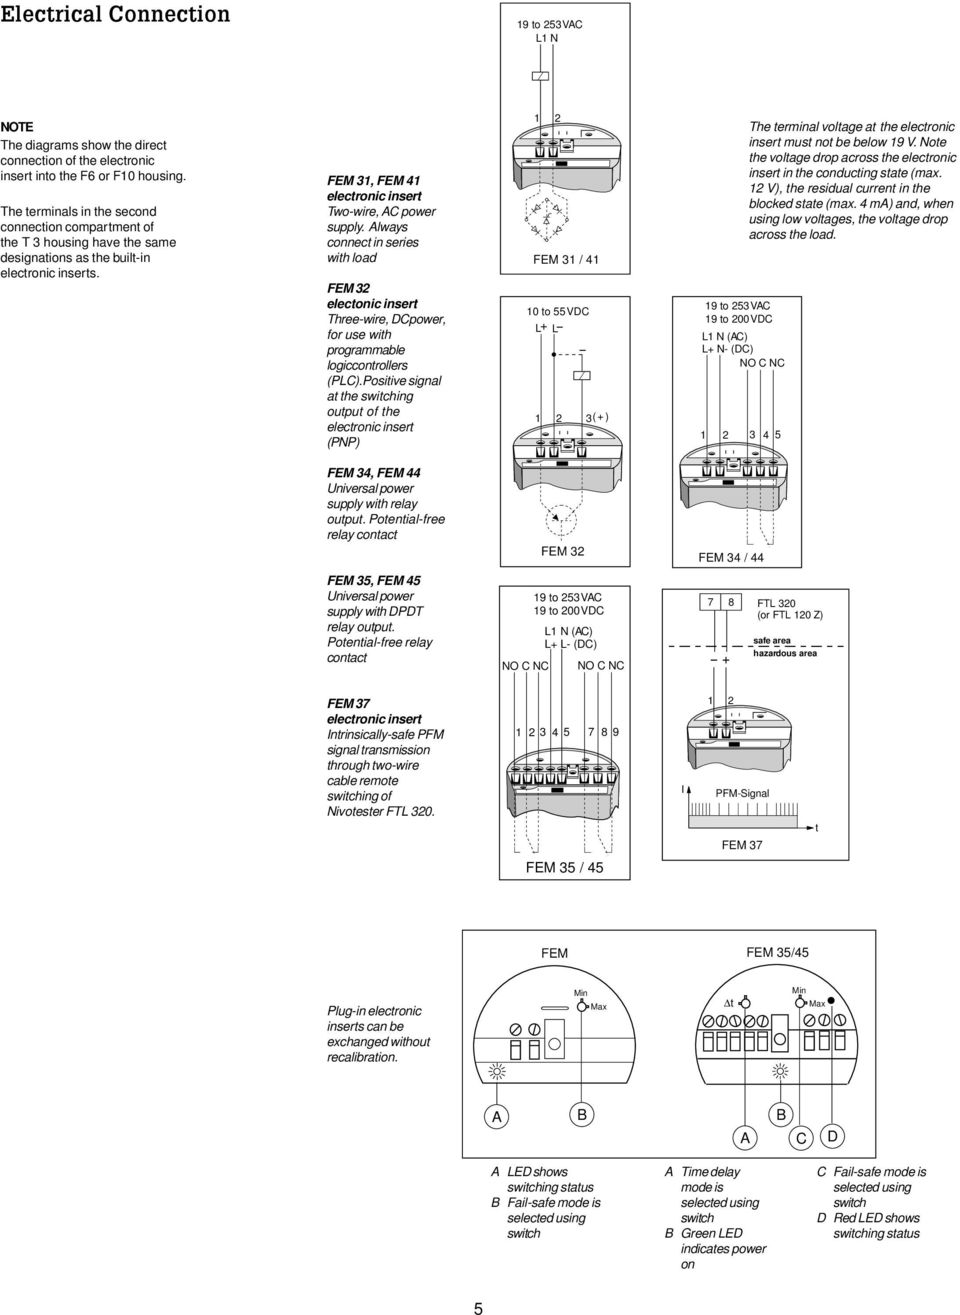 Level Switch Soliphant Ii Ftm 30 31 32 Pdf Photoelectric Pnp Wiring Diagram Always Connect In Series With Load Fem 2 Electonic Insert Three Wire Dcpower